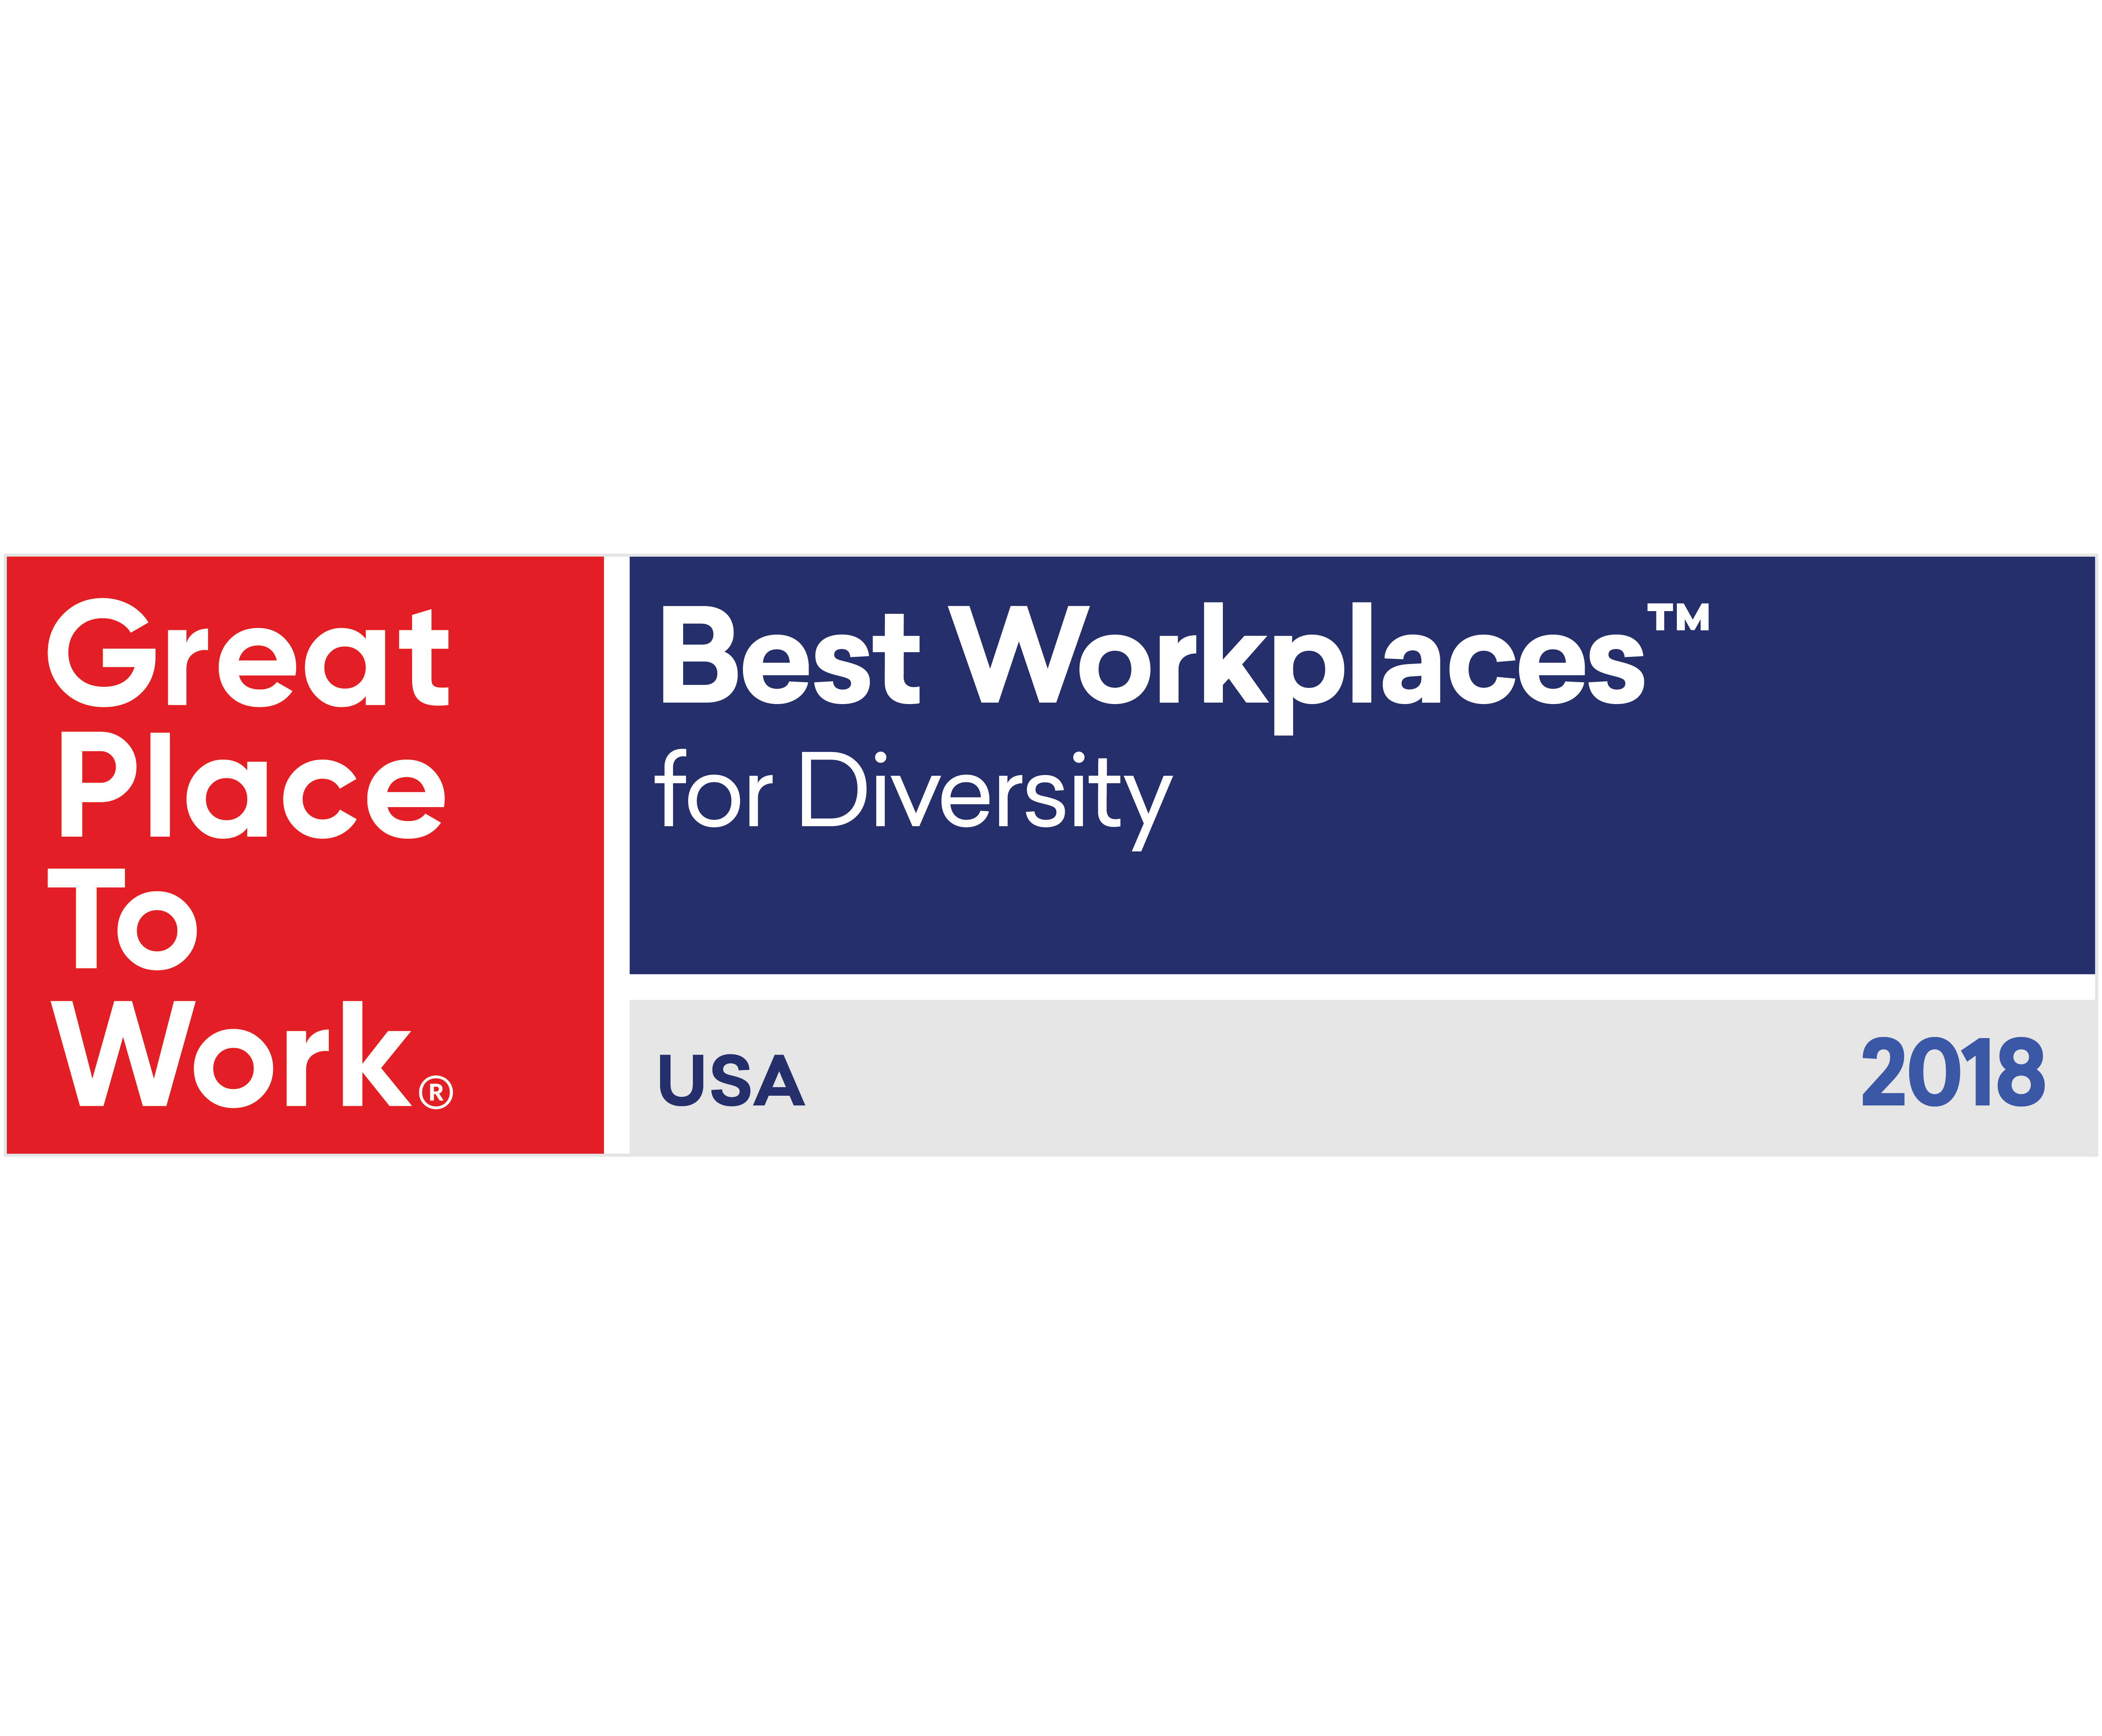 Best workplaces for diversity